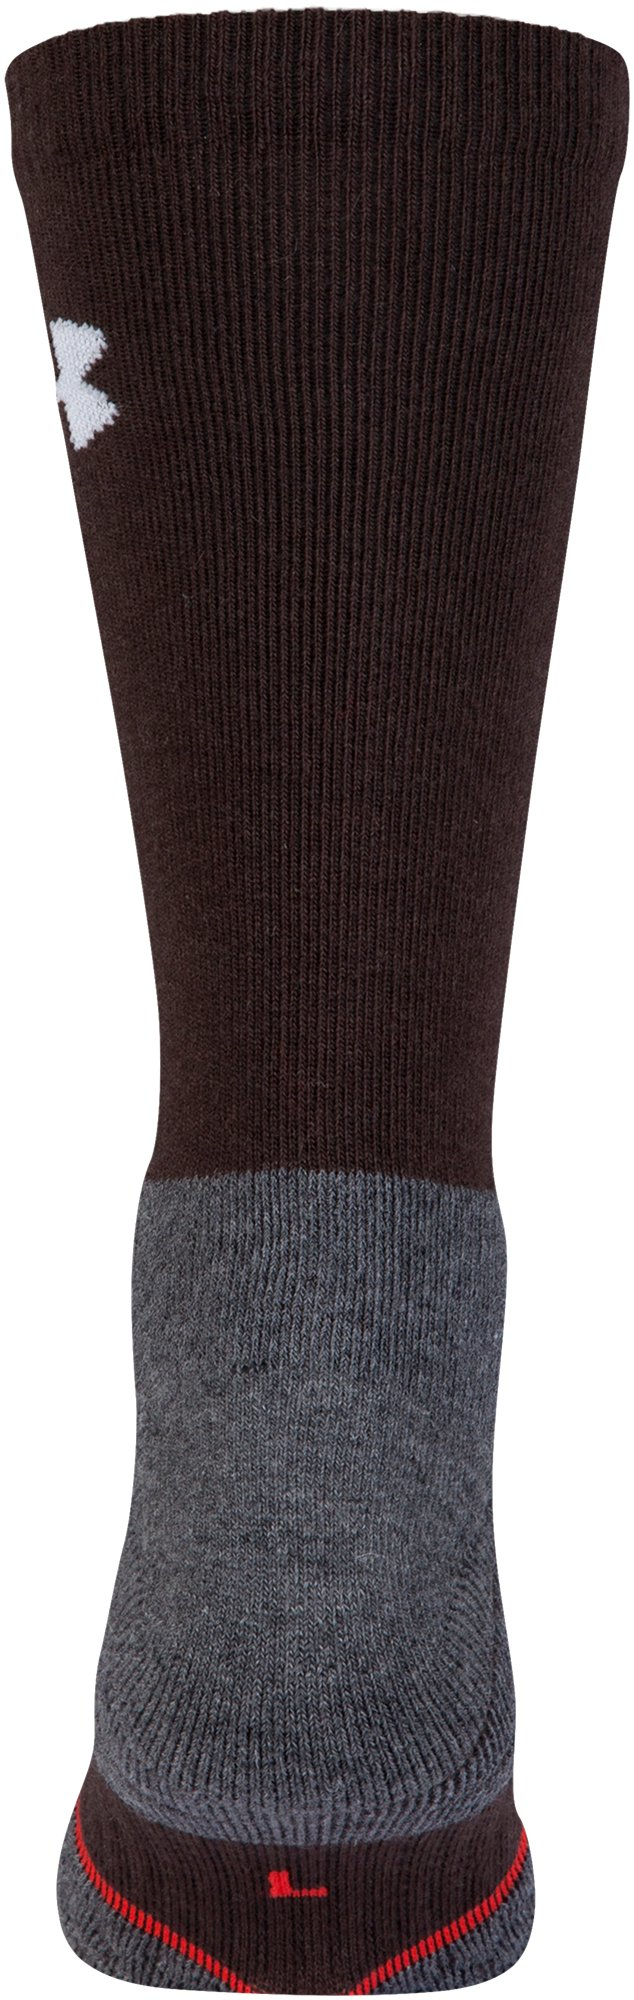 UA All Season Wool Boot Socks, MAVERICK BROWN, undefined